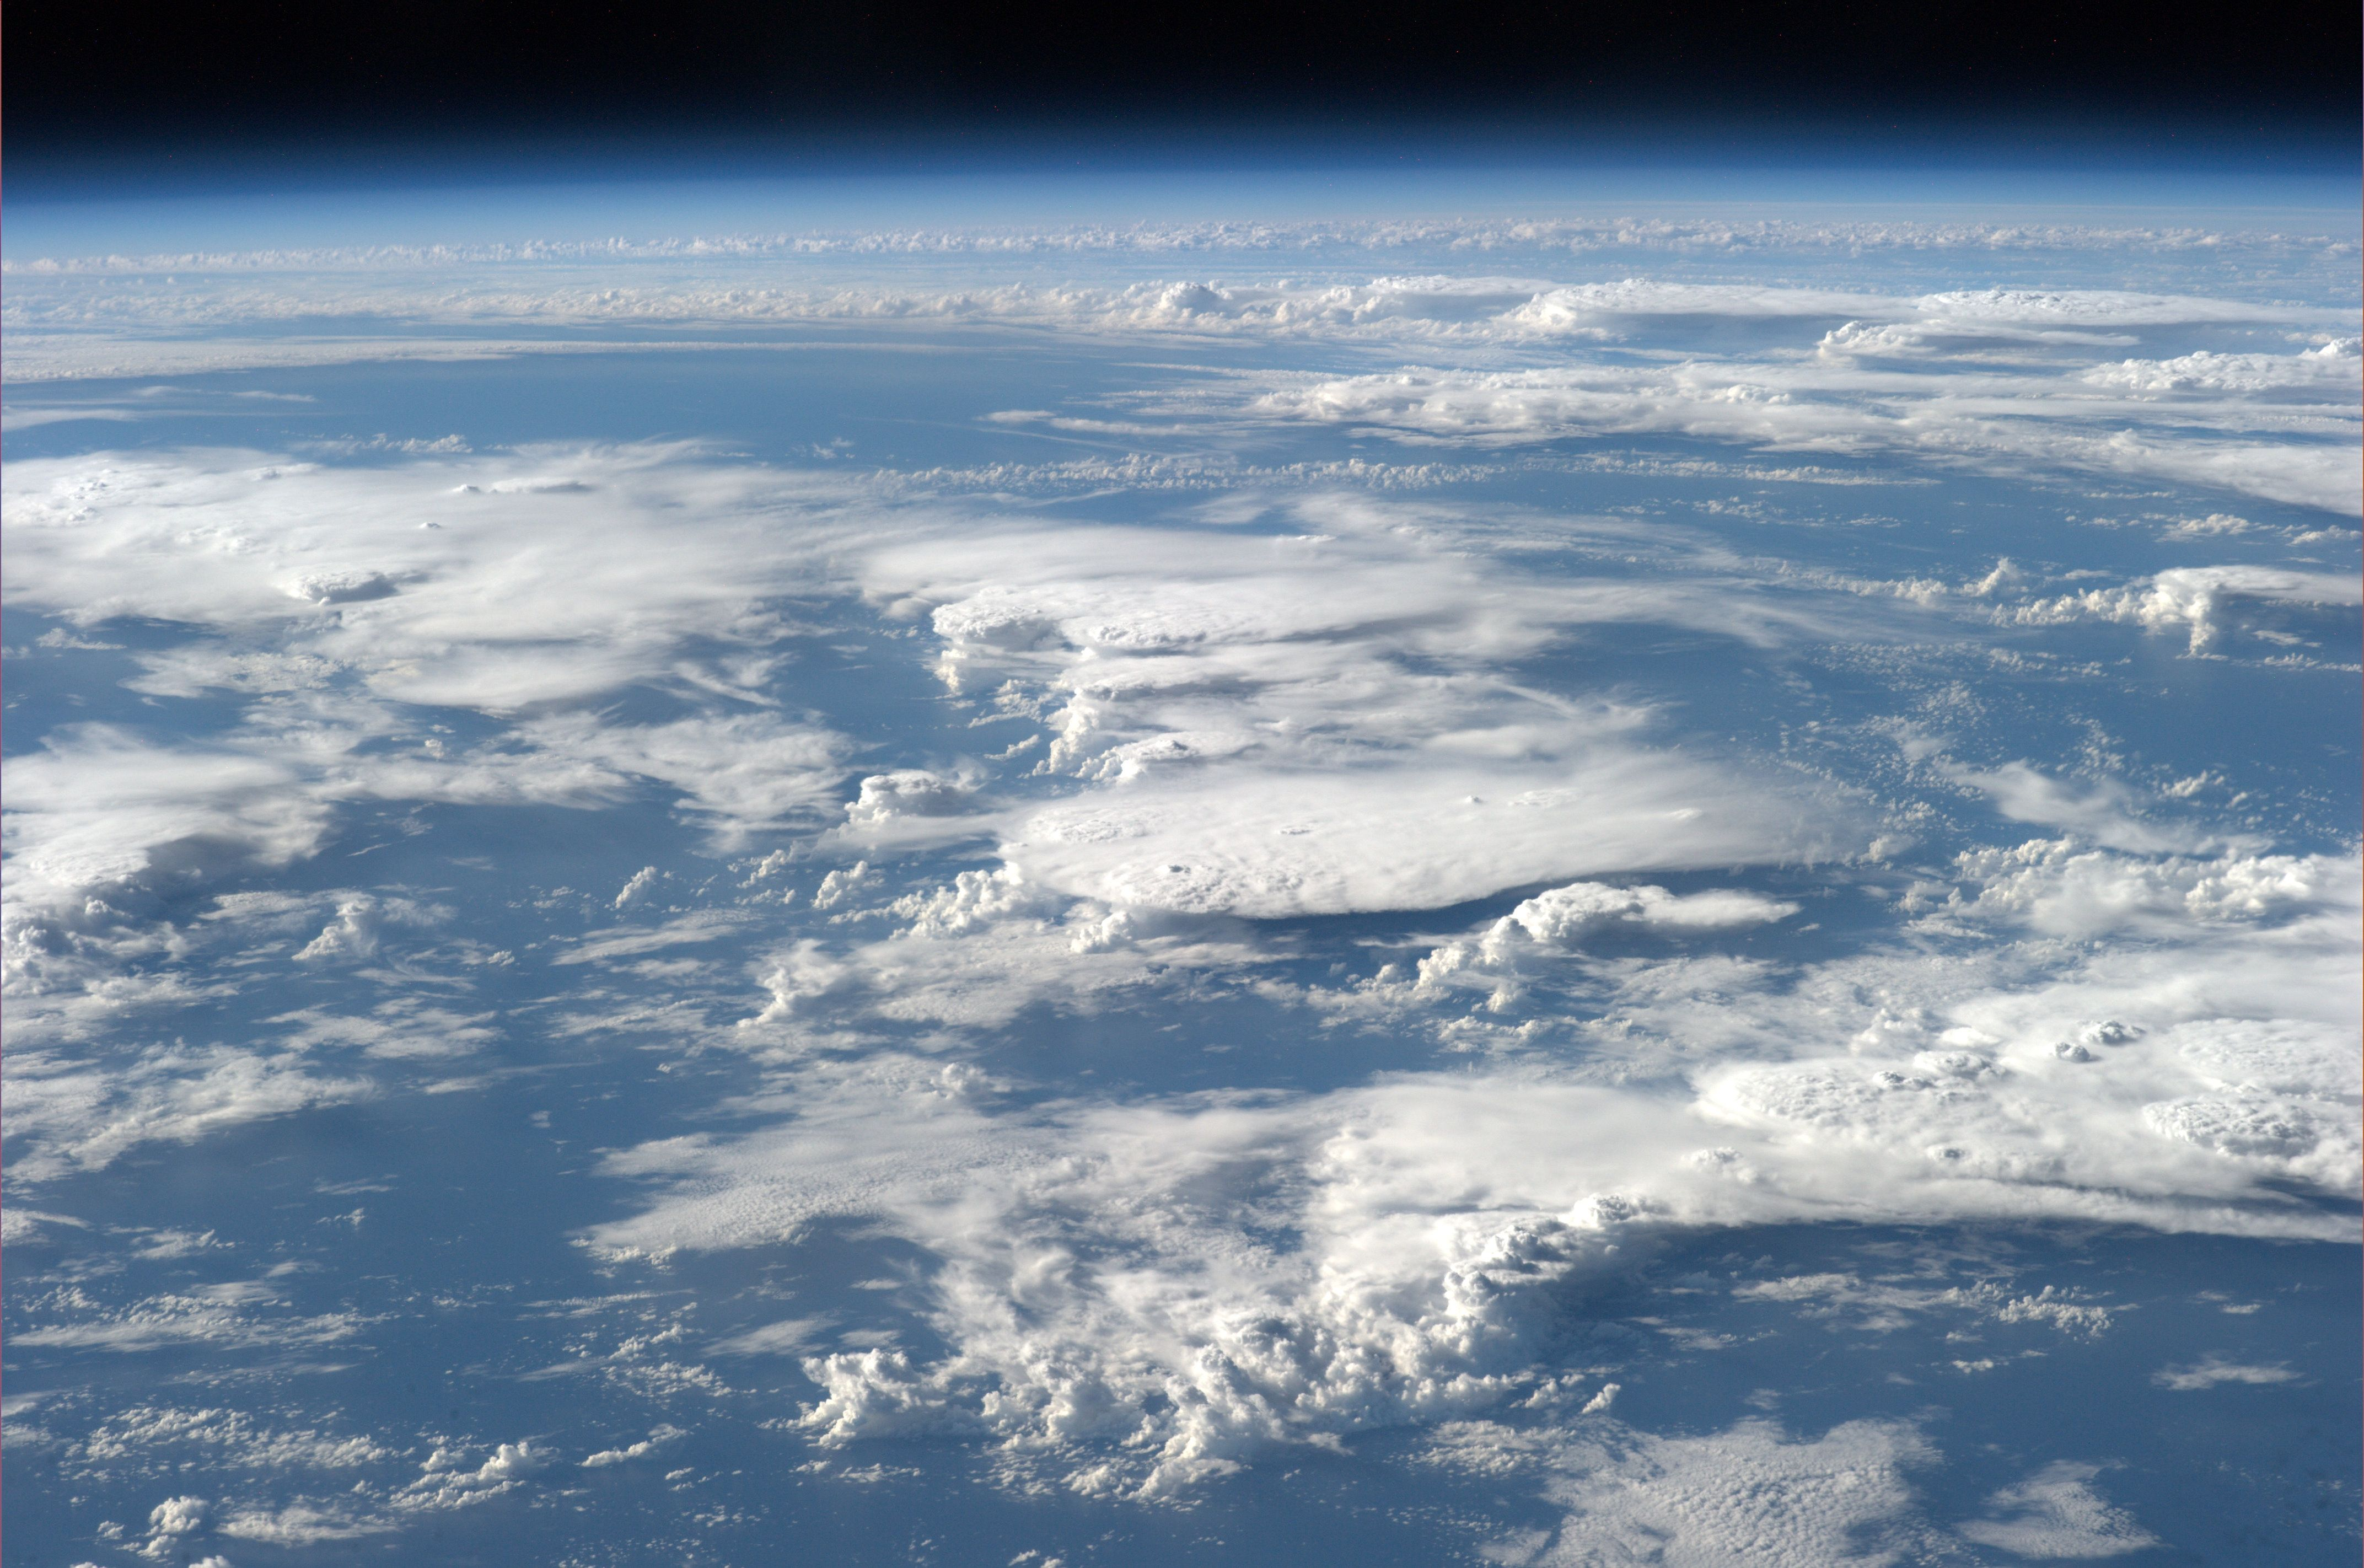 Clouds as seen from above. Credits: ESA/NASA